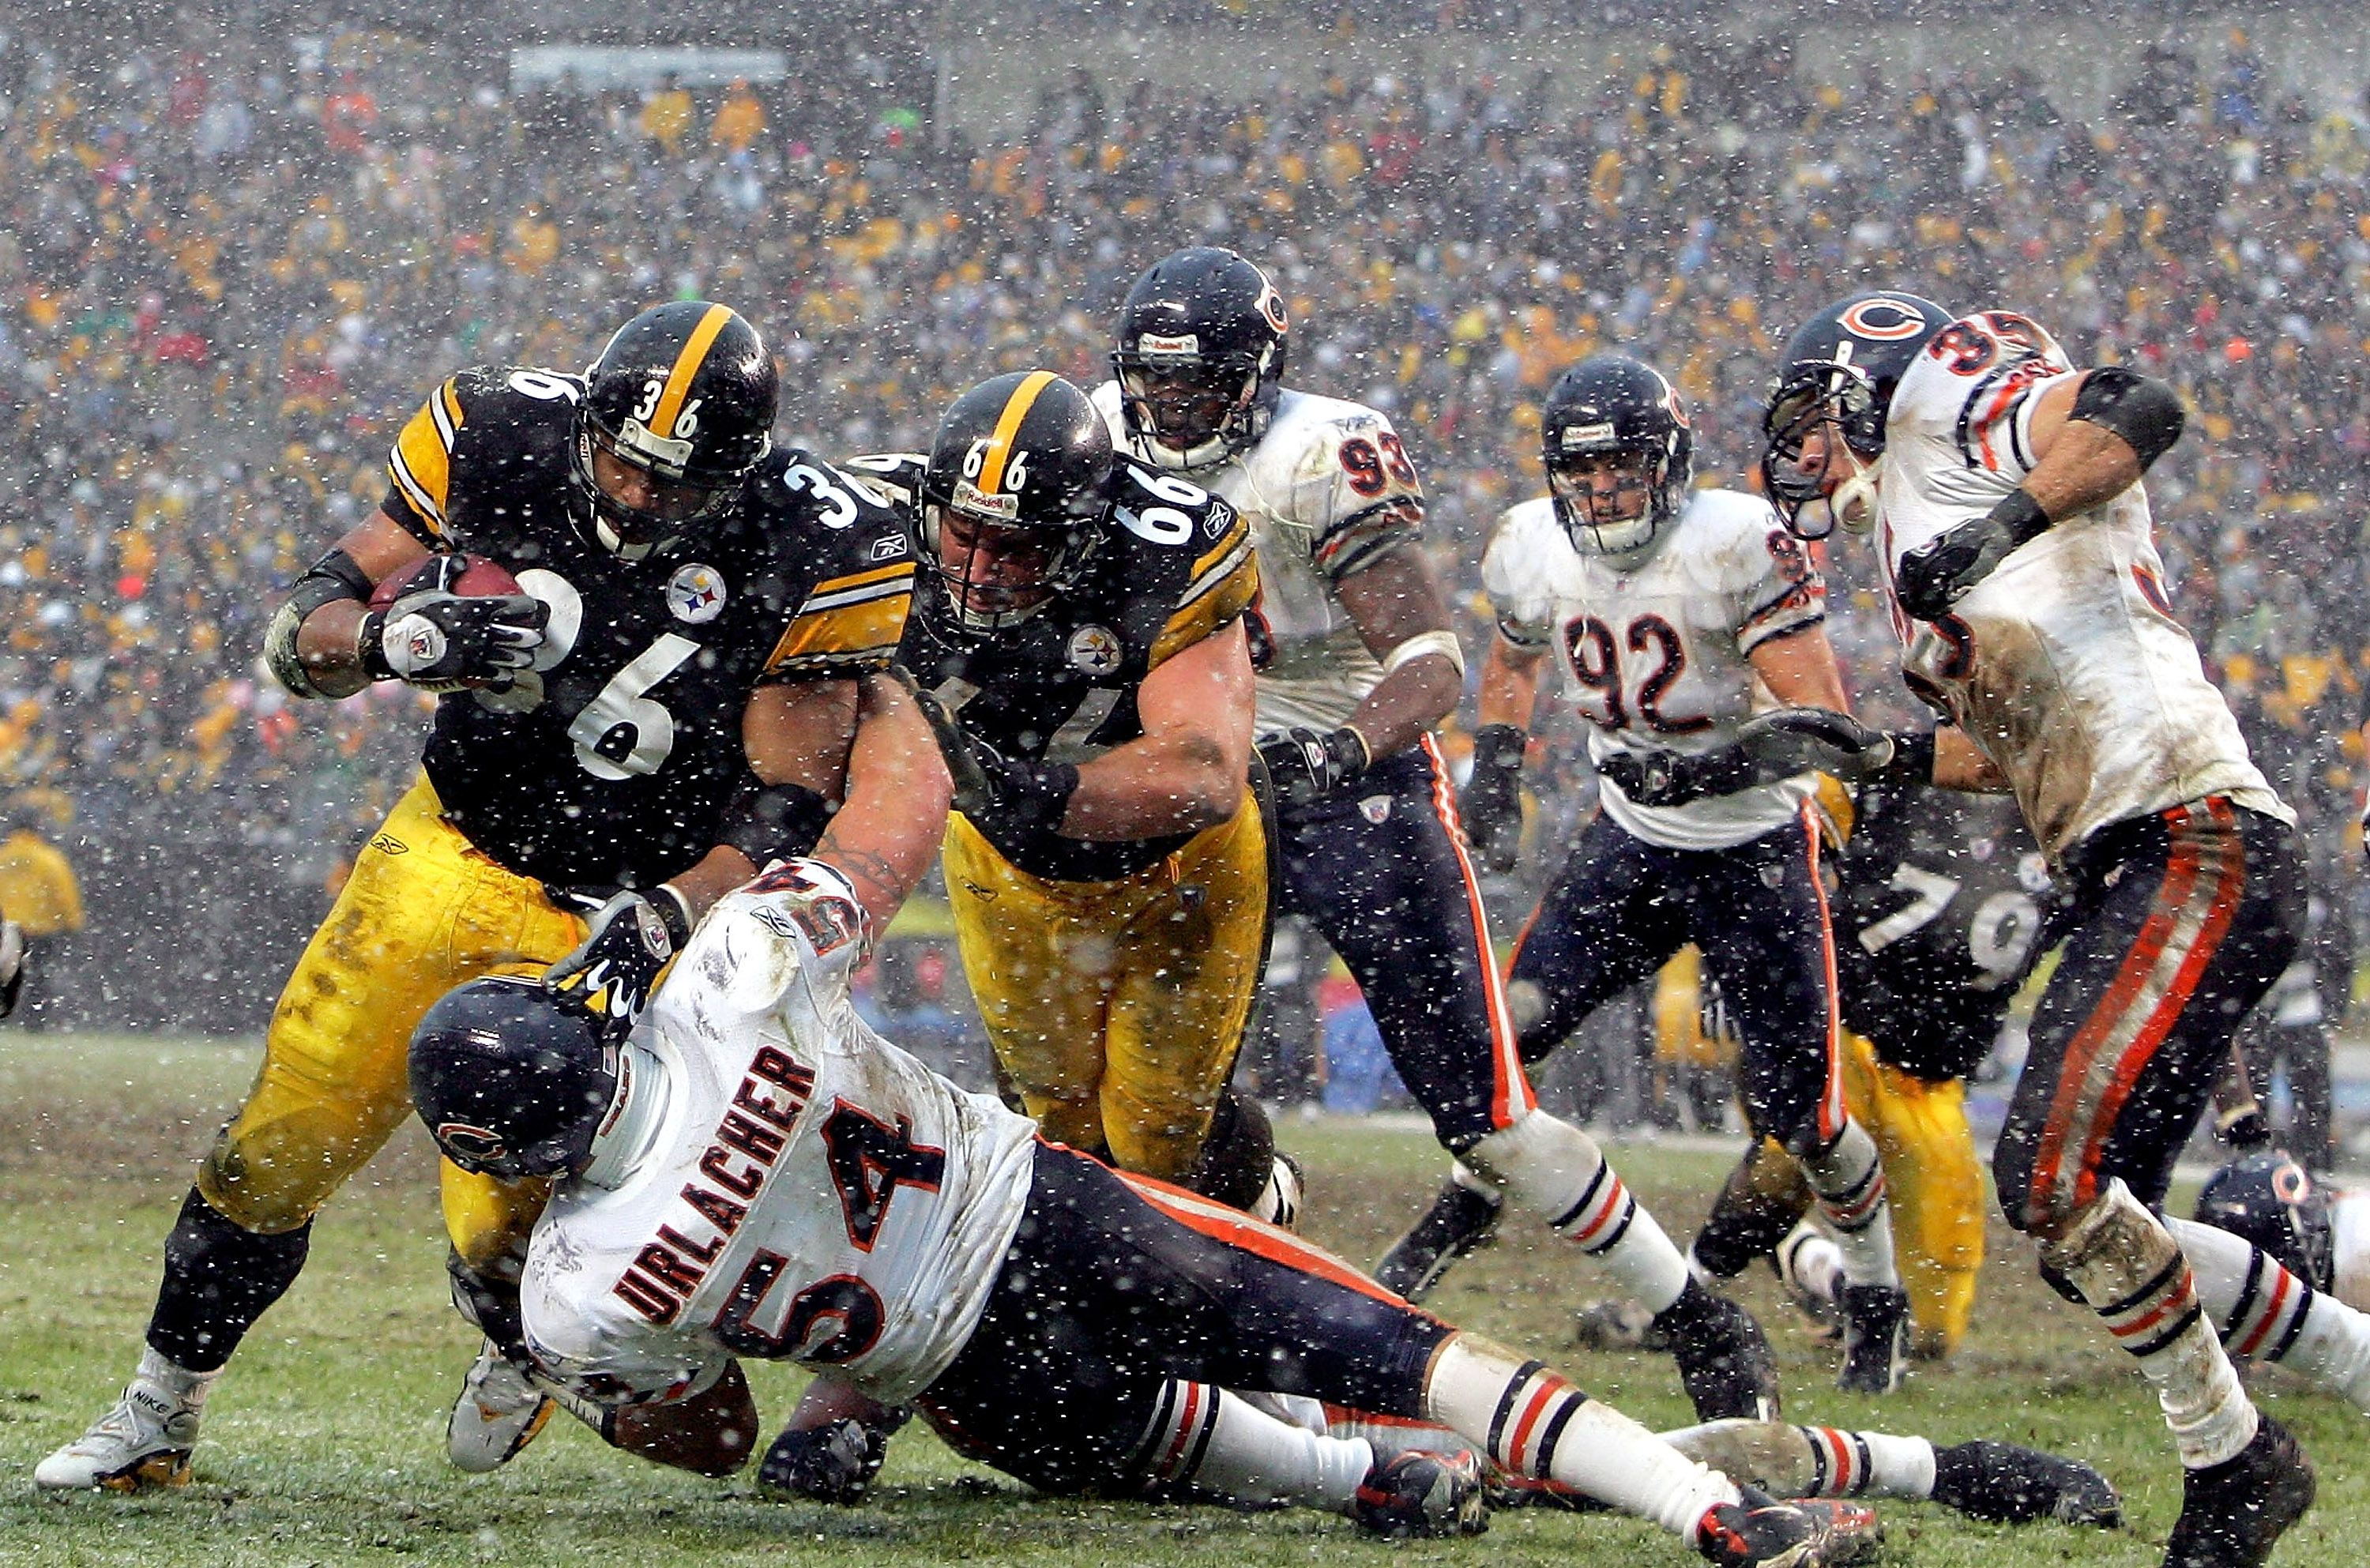 Jerome Bettis of the Pittsburgh Steelers runs over Brian Urlacher the Chicago Bears for a touchdown.